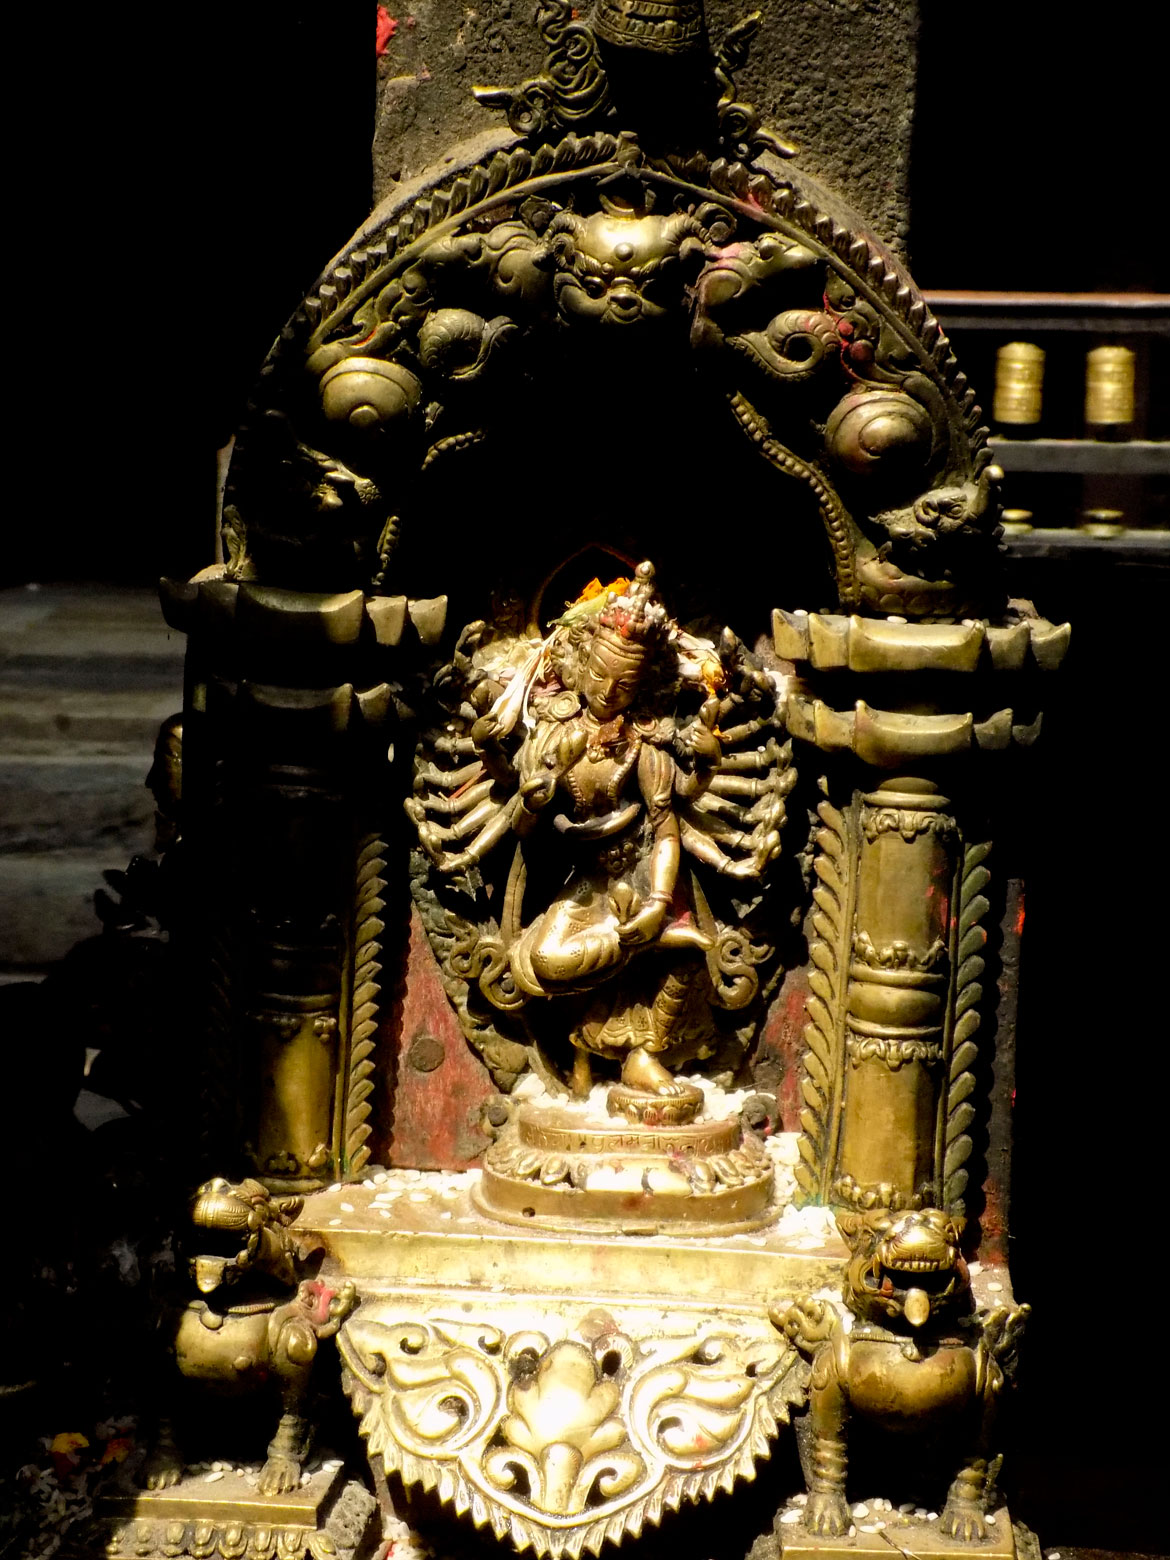 At the Kwa Baha, you will find depictions of 12 forms of the Bodhisattva Avalokiteshwara, including this one, Nrityeshwar. Avalokiteshwara is the most important deity of Patan, and maybe even the entire Kathmandu Valley. The cult of Karunamaya or Rakta Lokeshwara is the basis of the biggest religious festival of Patan, the Karunamaya Rath Yatra. Hindus identify Karunamaya with the Saiva siddha Macchendranath